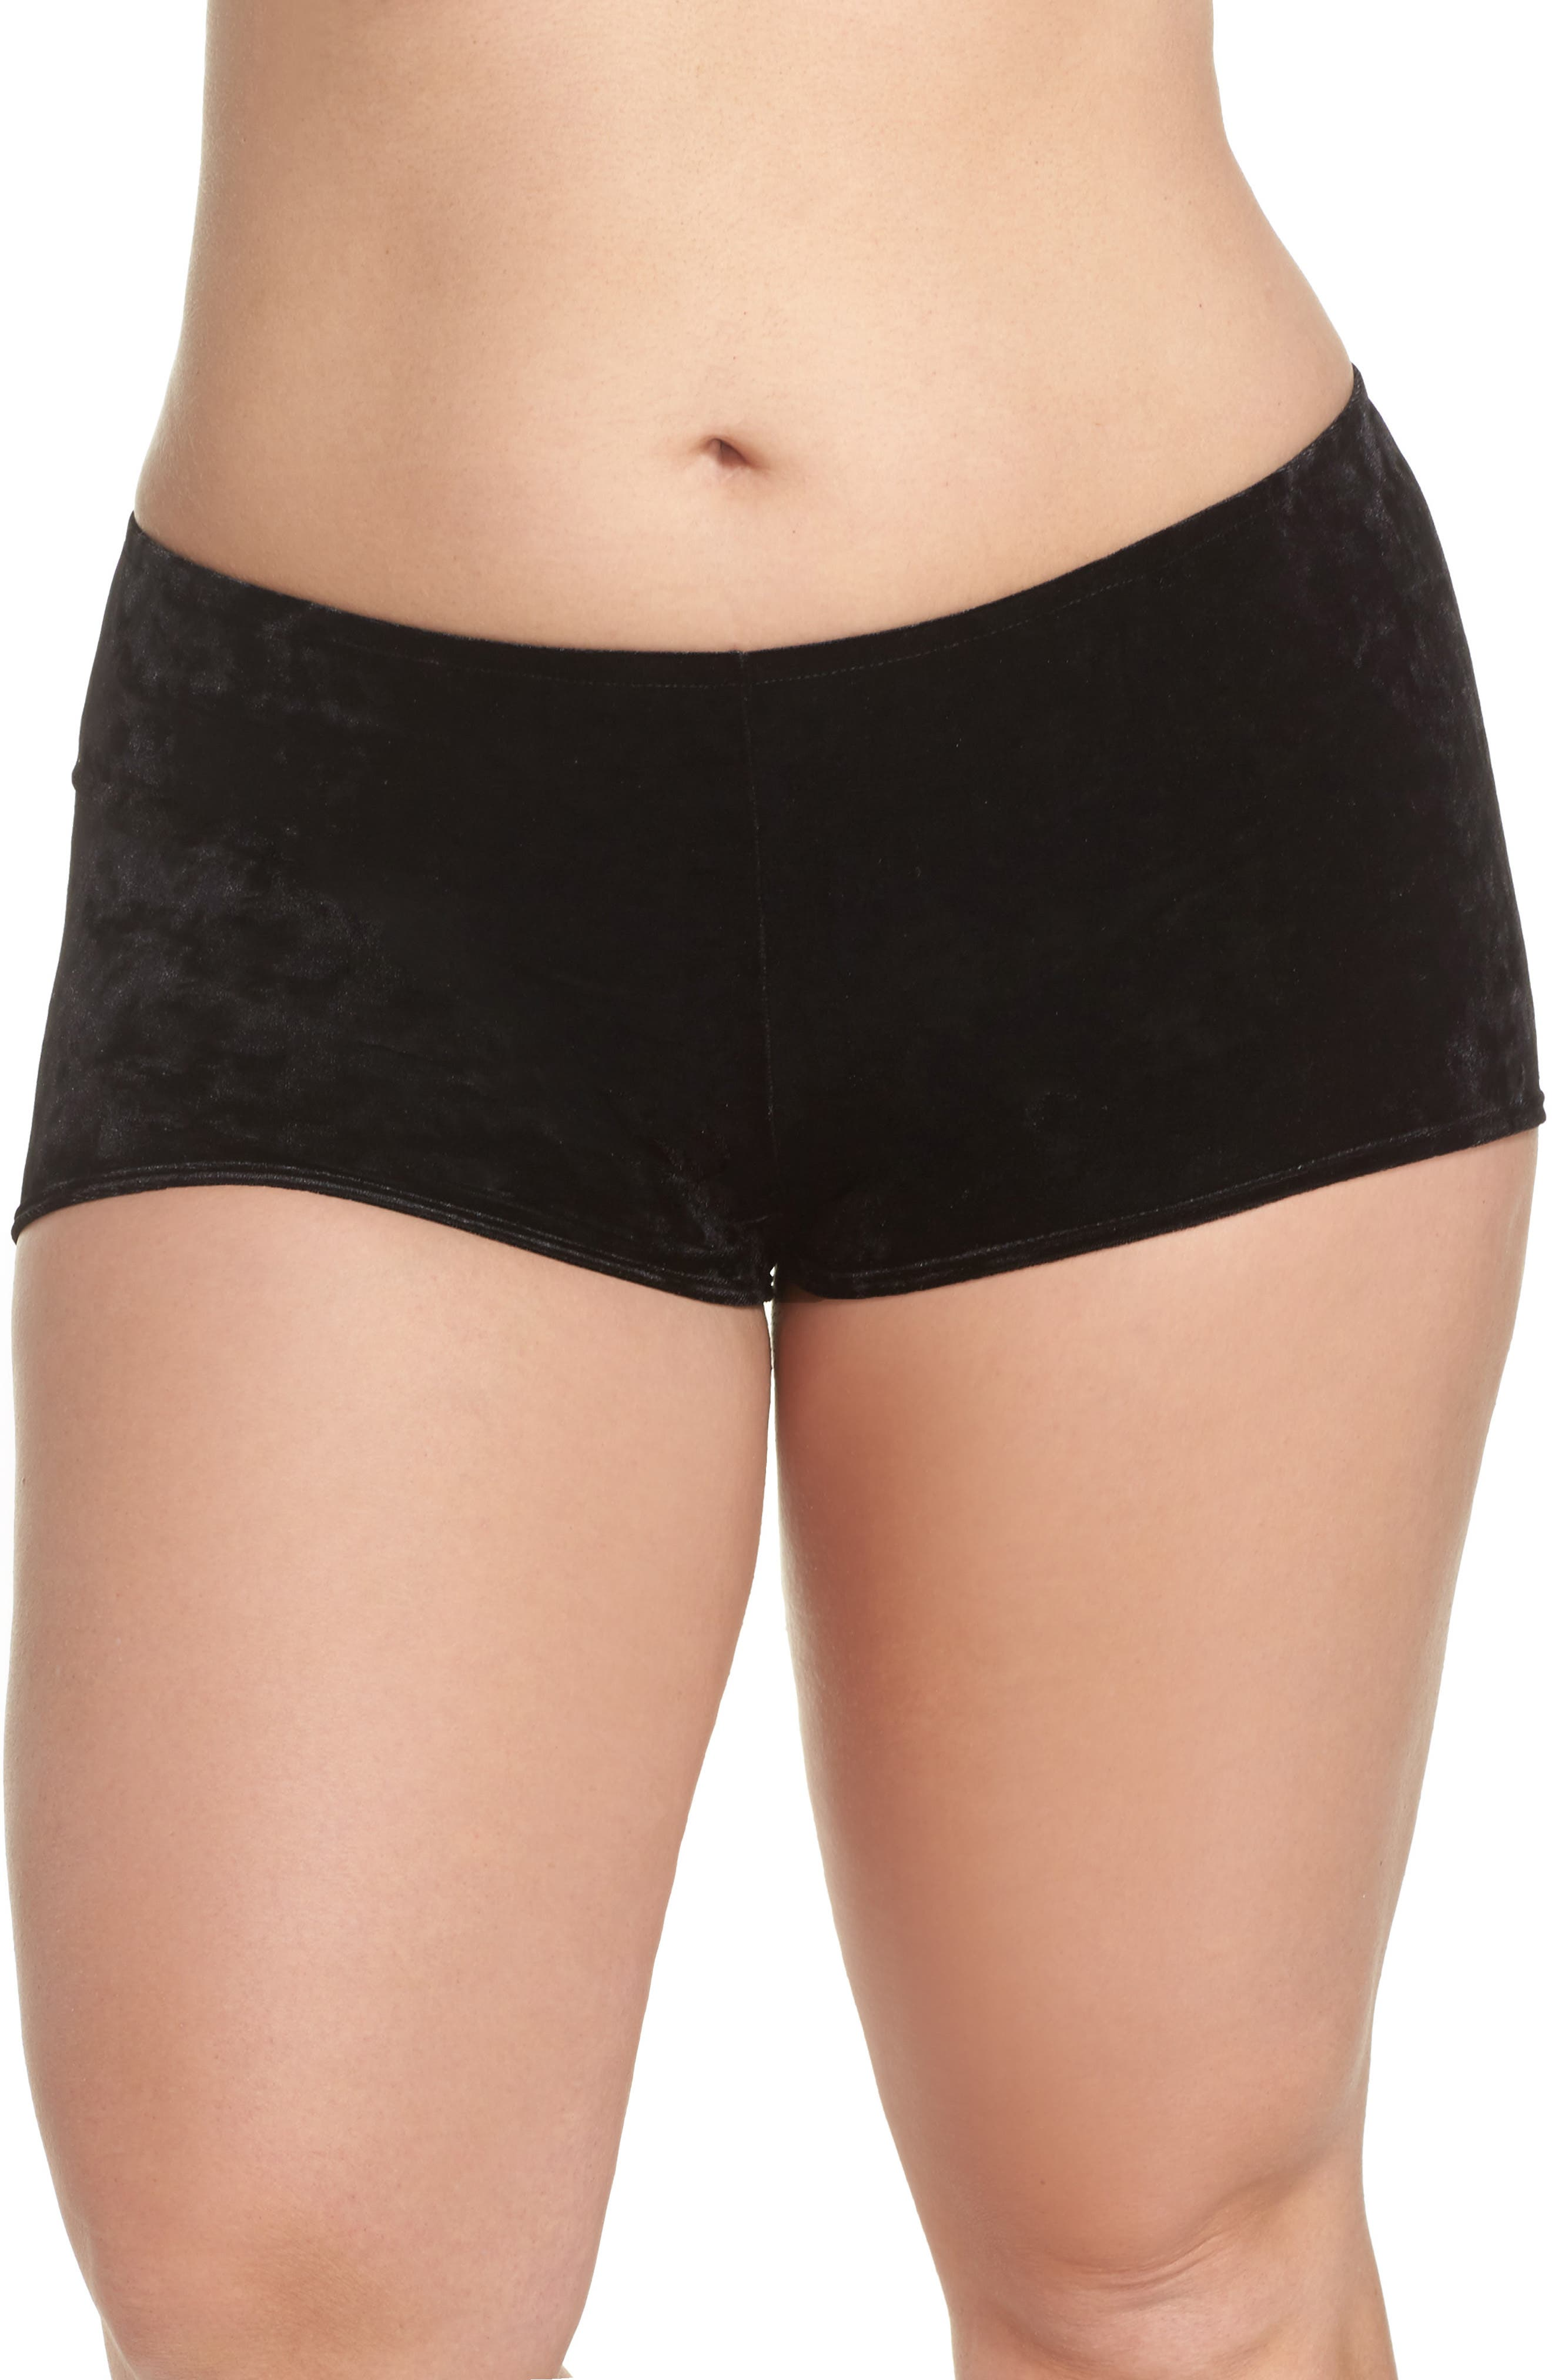 Main Image - Only Hearts Velvet Hipster Briefs (Plus Size)